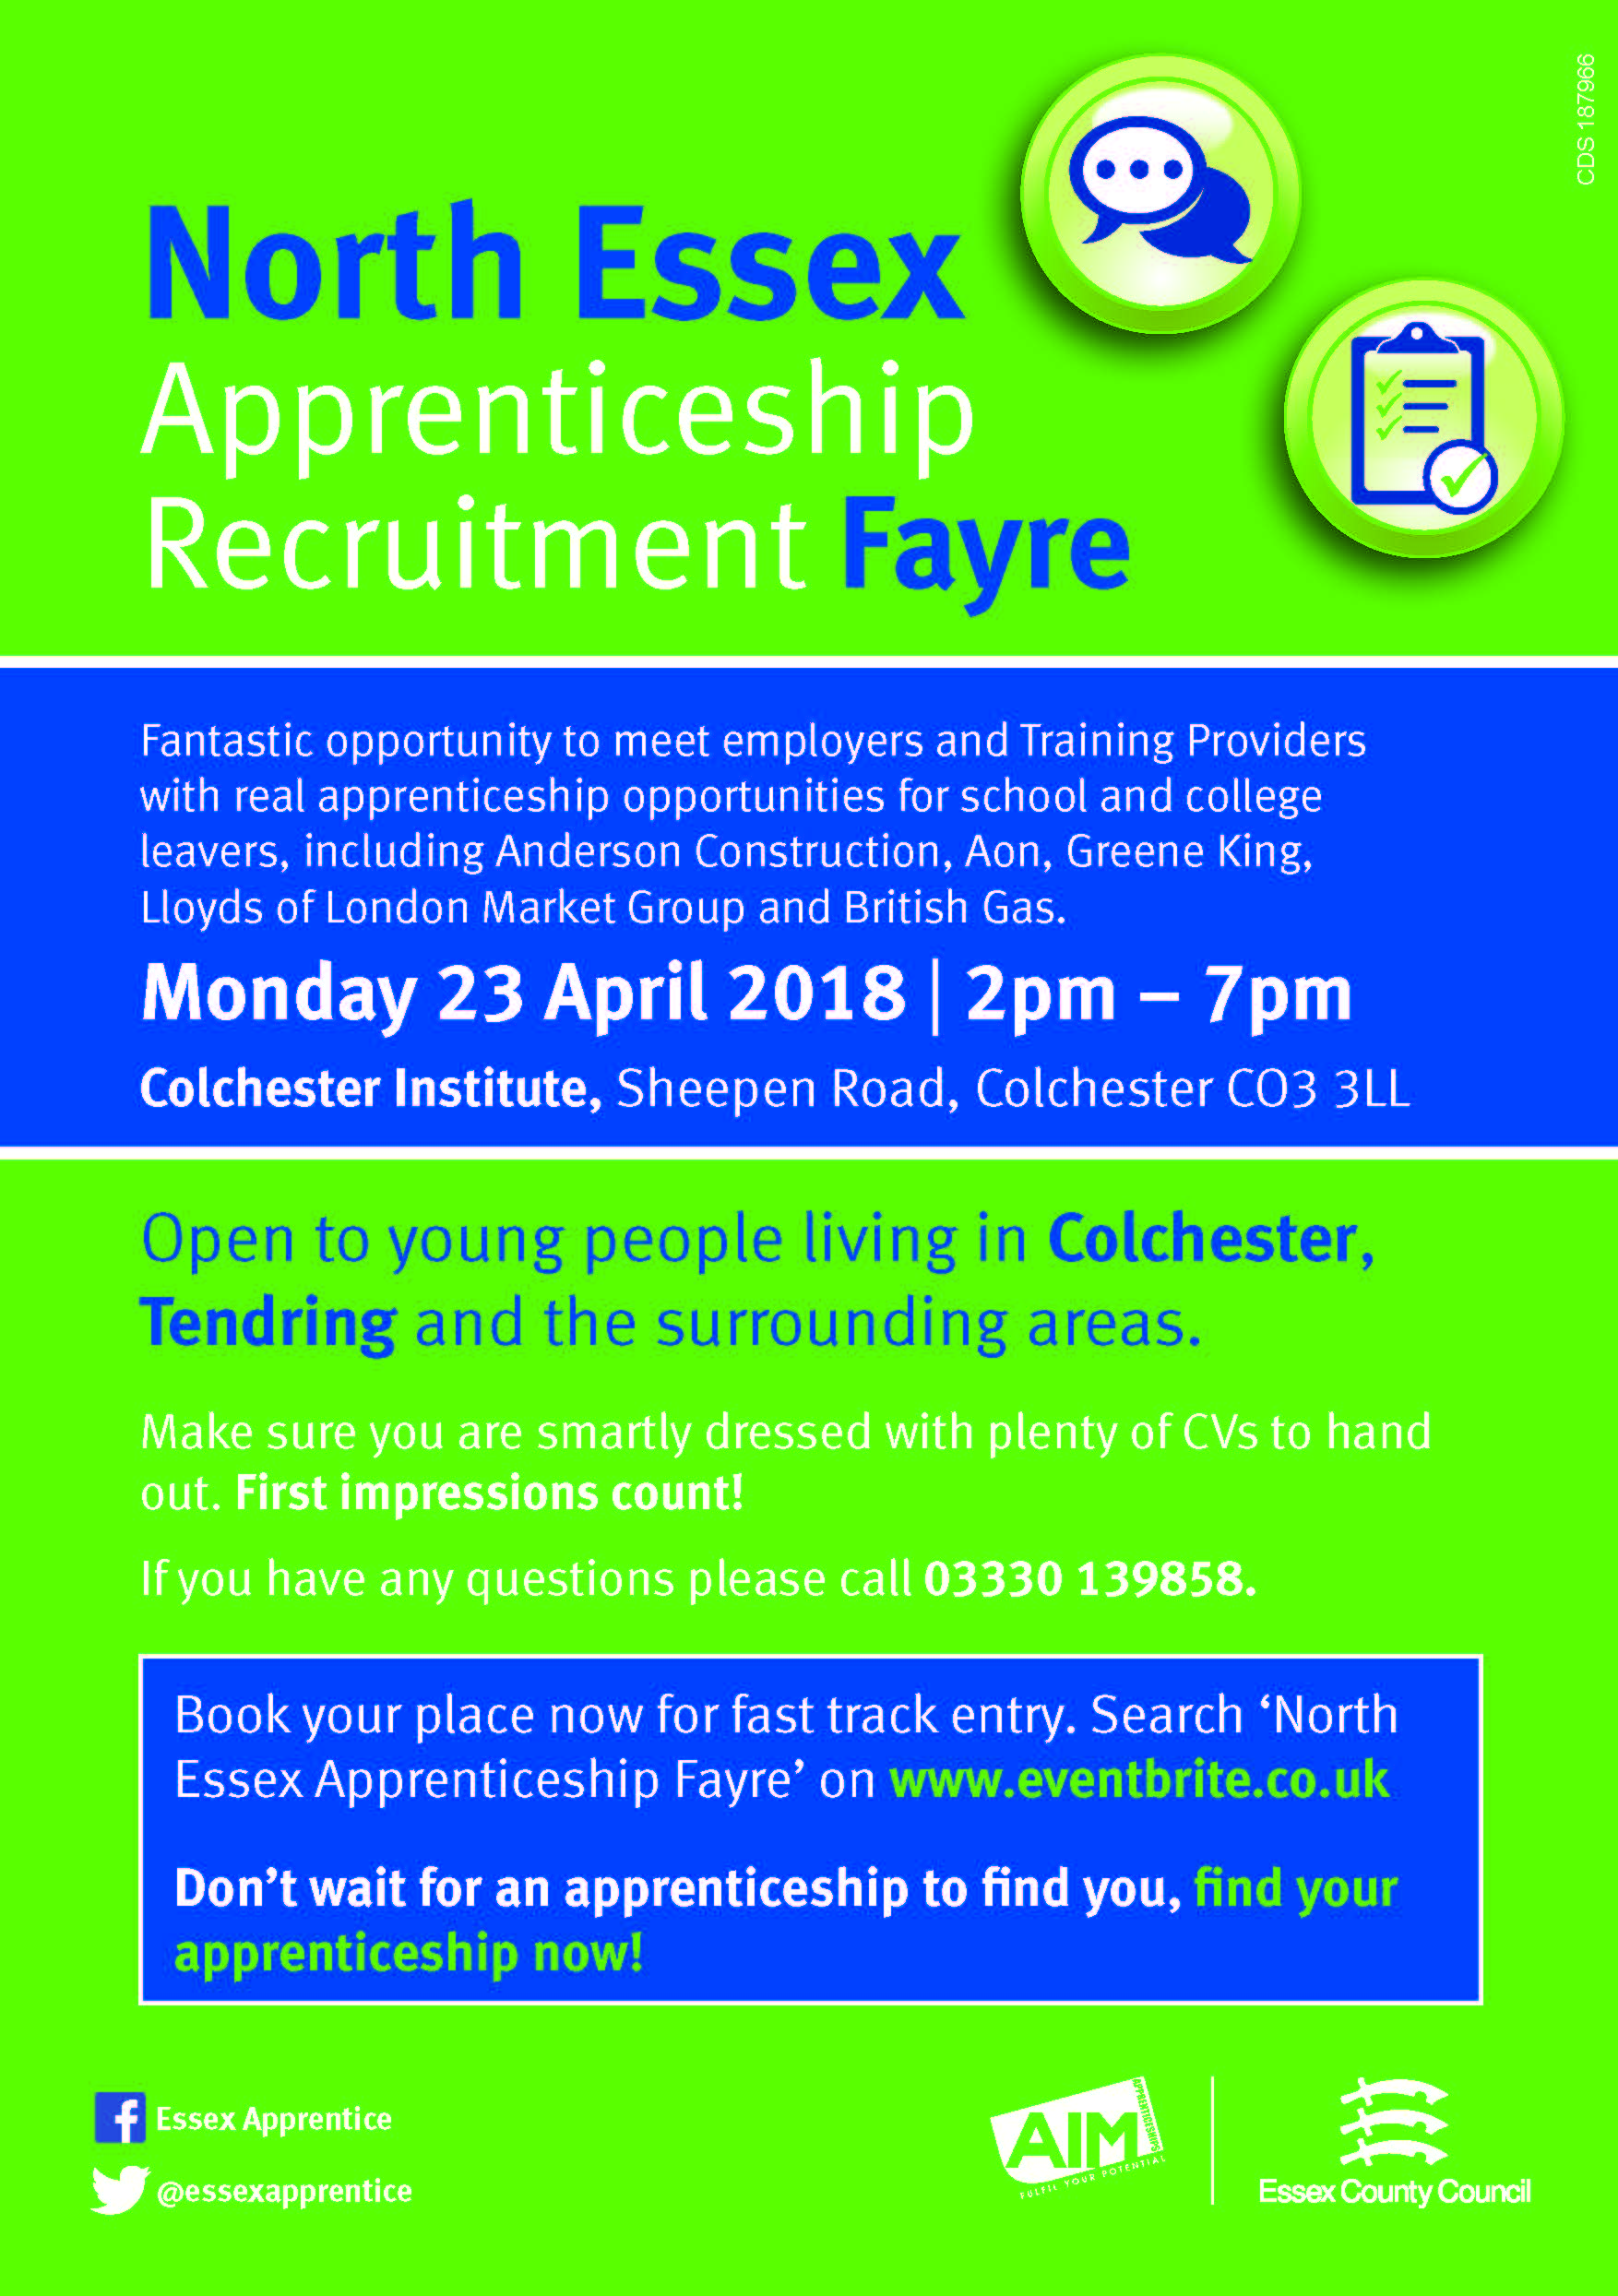 North Essex Apprenticeship Recruitment Fayre 23.04.18